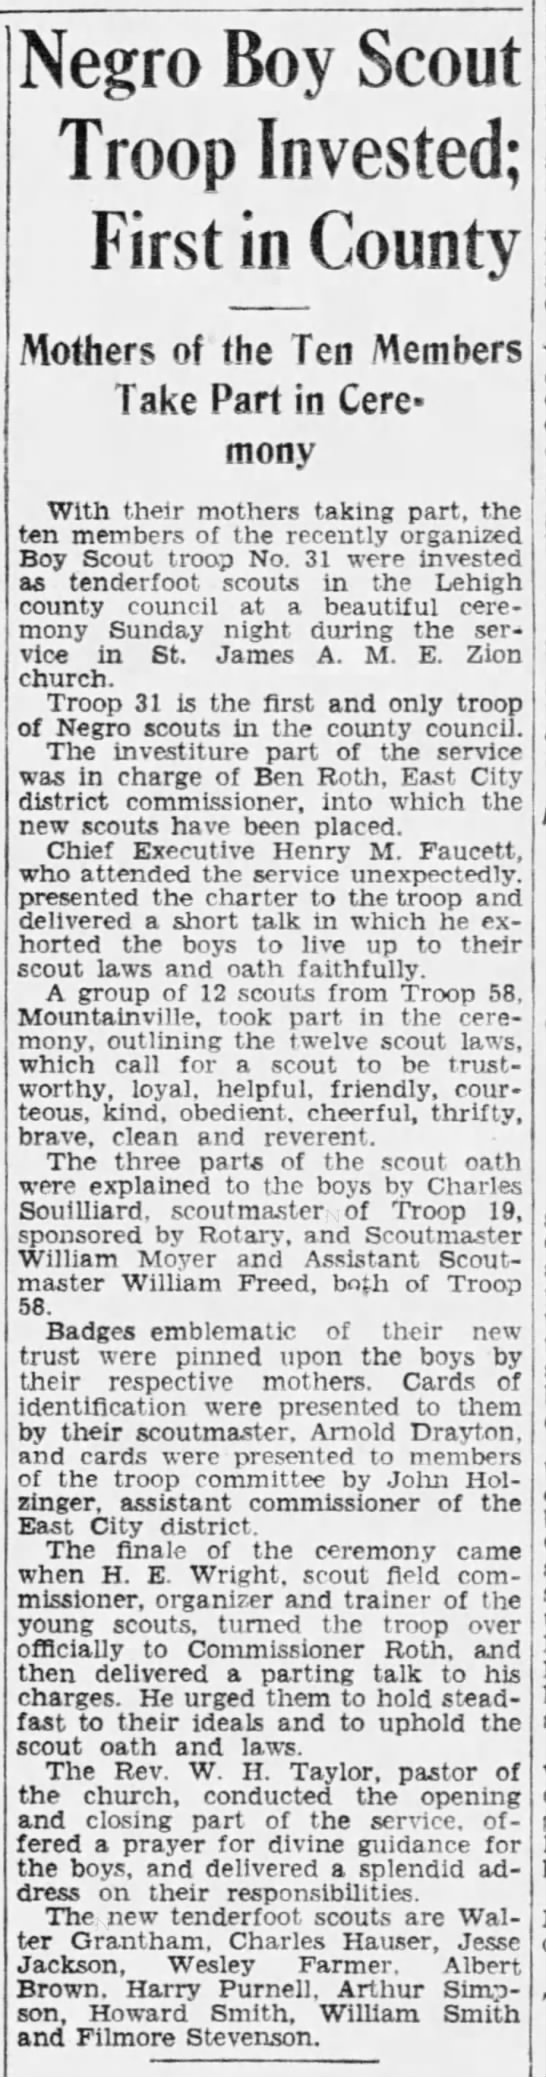 Boy Scout Troop#31 (1st Afro-American Boy Scout troop in Lehigh Co.) - St James AME Zion Church -